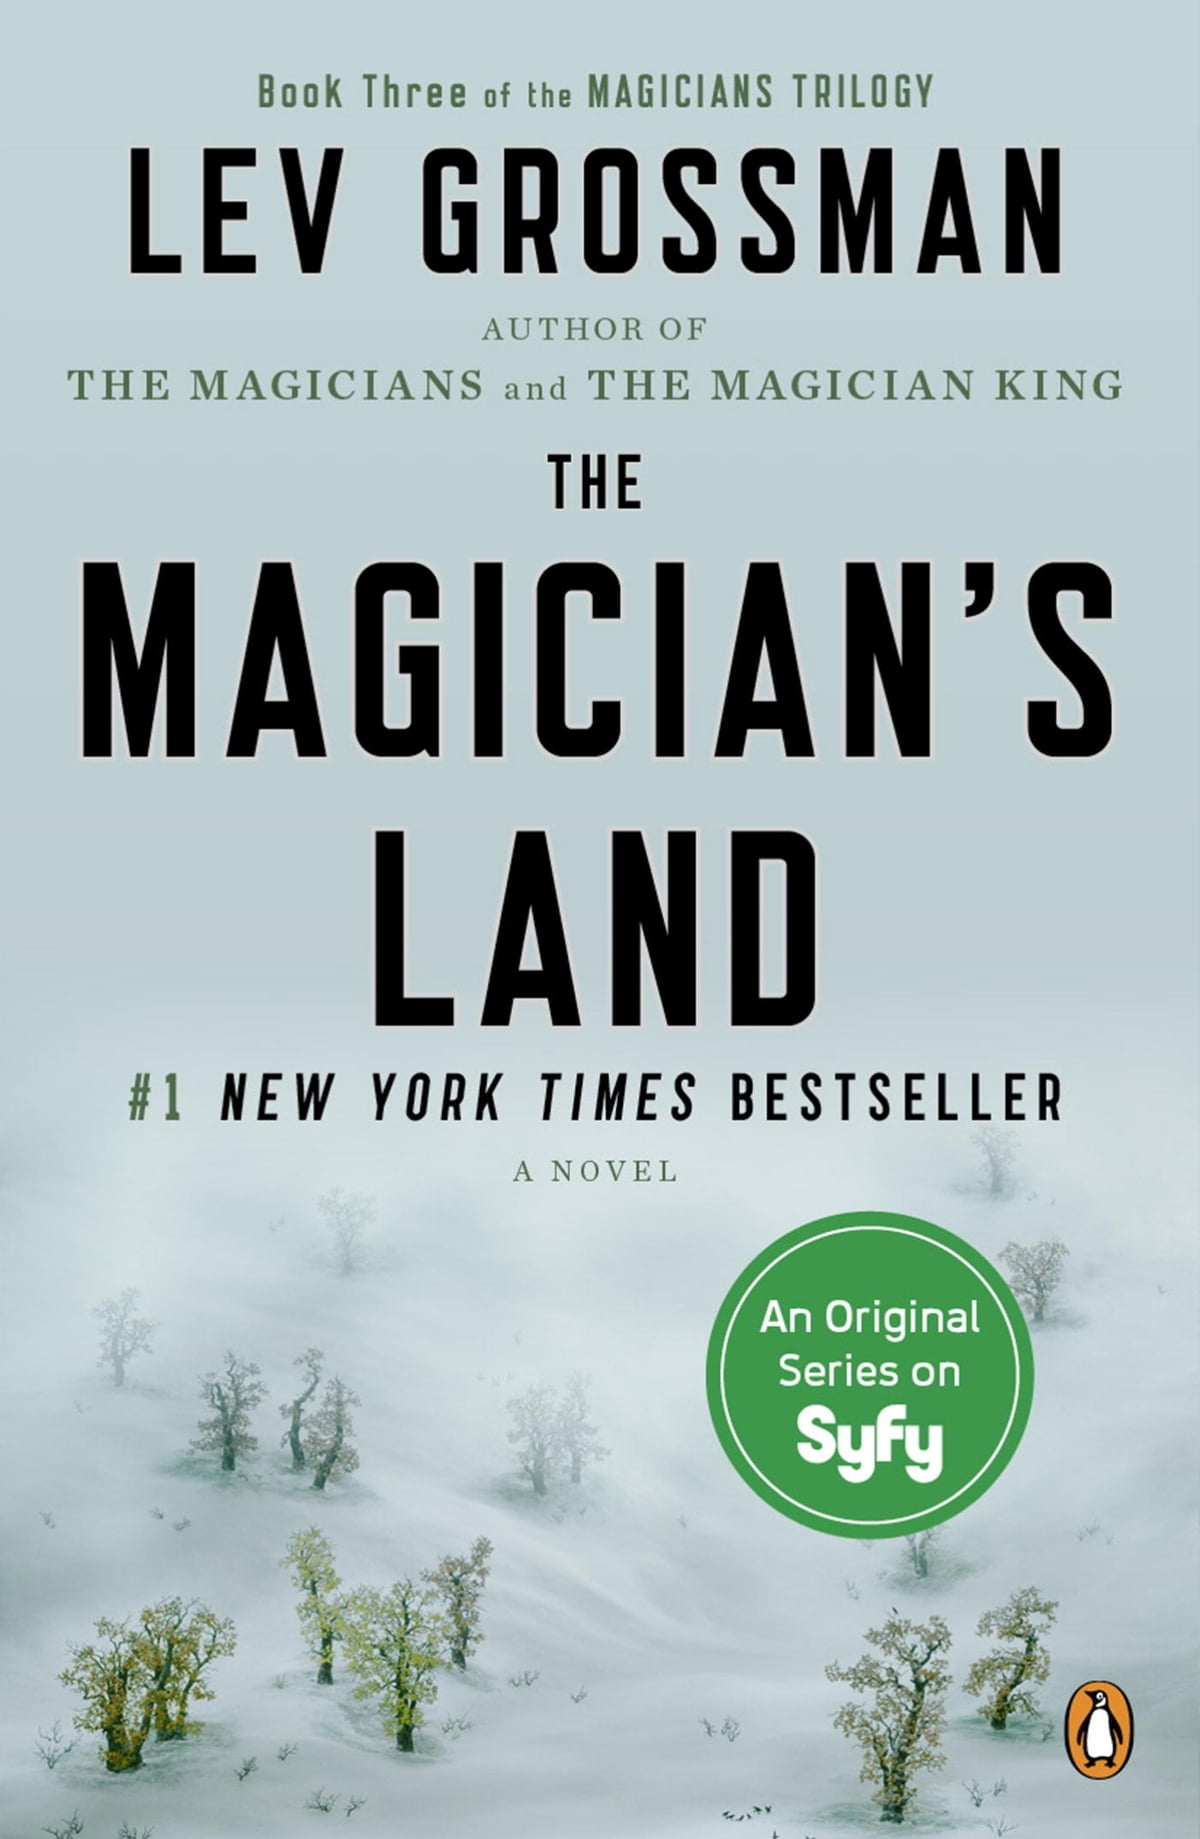 The Magician's Land Ebook By Lev Grossman  9781101633533  Rakuten Kobo